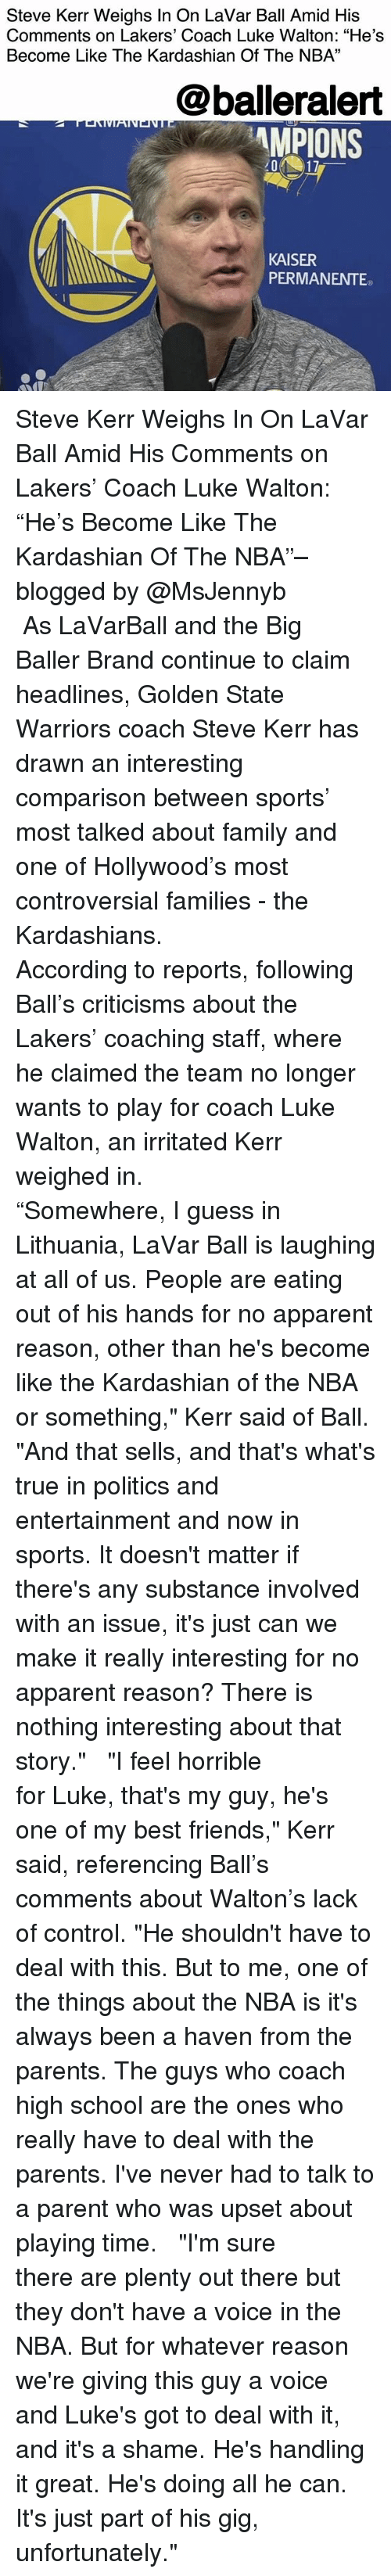 "Family, Friends, and Golden State Warriors: Steve Kerr Weighs In On LaVar Ball Amid His  Comments on Lakers' Coach Luke Walton: ""He's  Become Like The Kardashian Of The NBA""  13  @balleralert  MPIONS  KAISER  PERMANENTE Steve Kerr Weighs In On LaVar Ball Amid His Comments on Lakers' Coach Luke Walton: ""He's Become Like The Kardashian Of The NBA""– blogged by @MsJennyb ⠀⠀⠀⠀⠀⠀⠀ ⠀⠀⠀⠀⠀⠀⠀ As LaVarBall and the Big Baller Brand continue to claim headlines, Golden State Warriors coach Steve Kerr has drawn an interesting comparison between sports' most talked about family and one of Hollywood's most controversial families - the Kardashians. ⠀⠀⠀⠀⠀⠀⠀ ⠀⠀⠀⠀⠀⠀⠀ According to reports, following Ball's criticisms about the Lakers' coaching staff, where he claimed the team no longer wants to play for coach Luke Walton, an irritated Kerr weighed in. ⠀⠀⠀⠀⠀⠀⠀ ⠀⠀⠀⠀⠀⠀⠀ ""Somewhere, I guess in Lithuania, LaVar Ball is laughing at all of us. People are eating out of his hands for no apparent reason, other than he's become like the Kardashian of the NBA or something,"" Kerr said of Ball. ""And that sells, and that's what's true in politics and entertainment and now in sports. It doesn't matter if there's any substance involved with an issue, it's just can we make it really interesting for no apparent reason? There is nothing interesting about that story."" ⠀⠀⠀⠀⠀⠀⠀ ⠀⠀⠀⠀⠀⠀⠀ ""I feel horrible for Luke, that's my guy, he's one of my best friends,"" Kerr said, referencing Ball's comments about Walton's lack of control. ""He shouldn't have to deal with this. But to me, one of the things about the NBA is it's always been a haven from the parents. The guys who coach high school are the ones who really have to deal with the parents. I've never had to talk to a parent who was upset about playing time. ⠀⠀⠀⠀⠀⠀⠀ ⠀⠀⠀⠀⠀⠀⠀ ""I'm sure there are plenty out there but they don't have a voice in the NBA. But for whatever reason we're giving this guy a voice and Luke's got to deal with it, and it's a shame. He's handling it great. He's doing all he can. It's just part of his gig, unfortunately."""